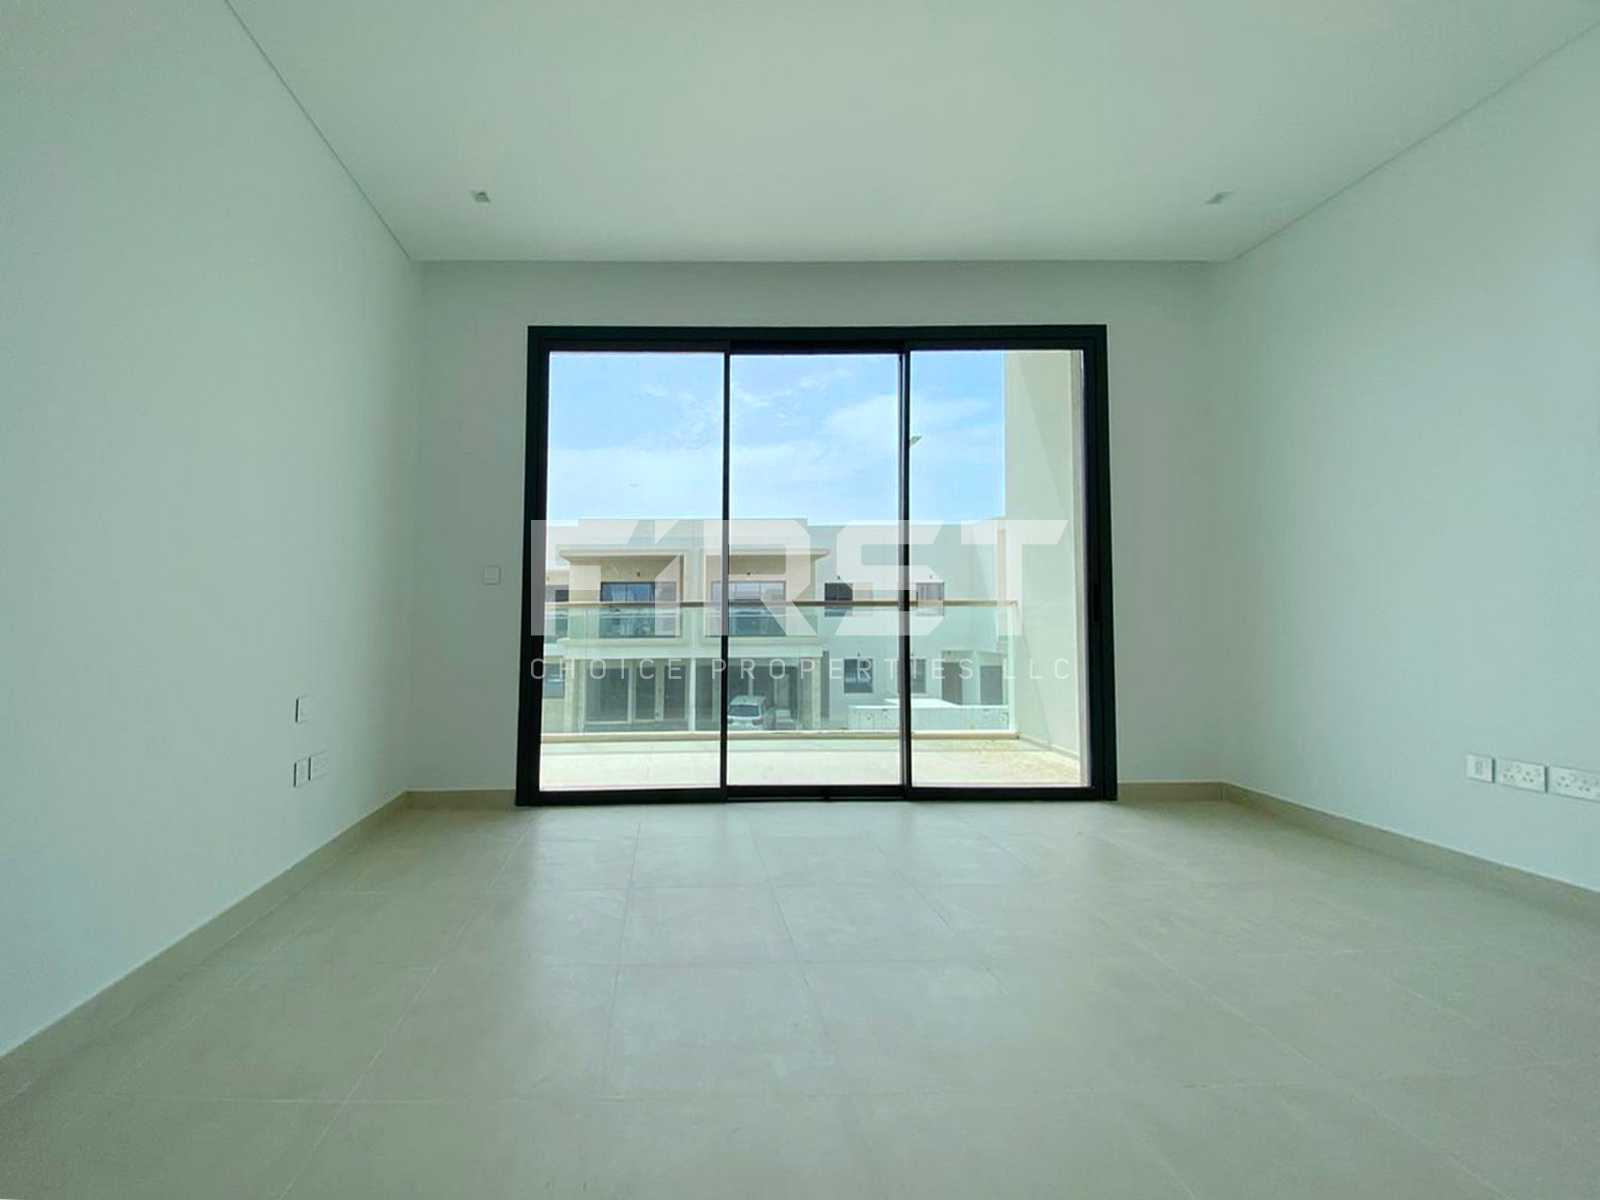 Internal Photo of 3 Bedroom Duplex Type Y in Yas Acres Yas Island Abu Dhabi UAE (22).jpg